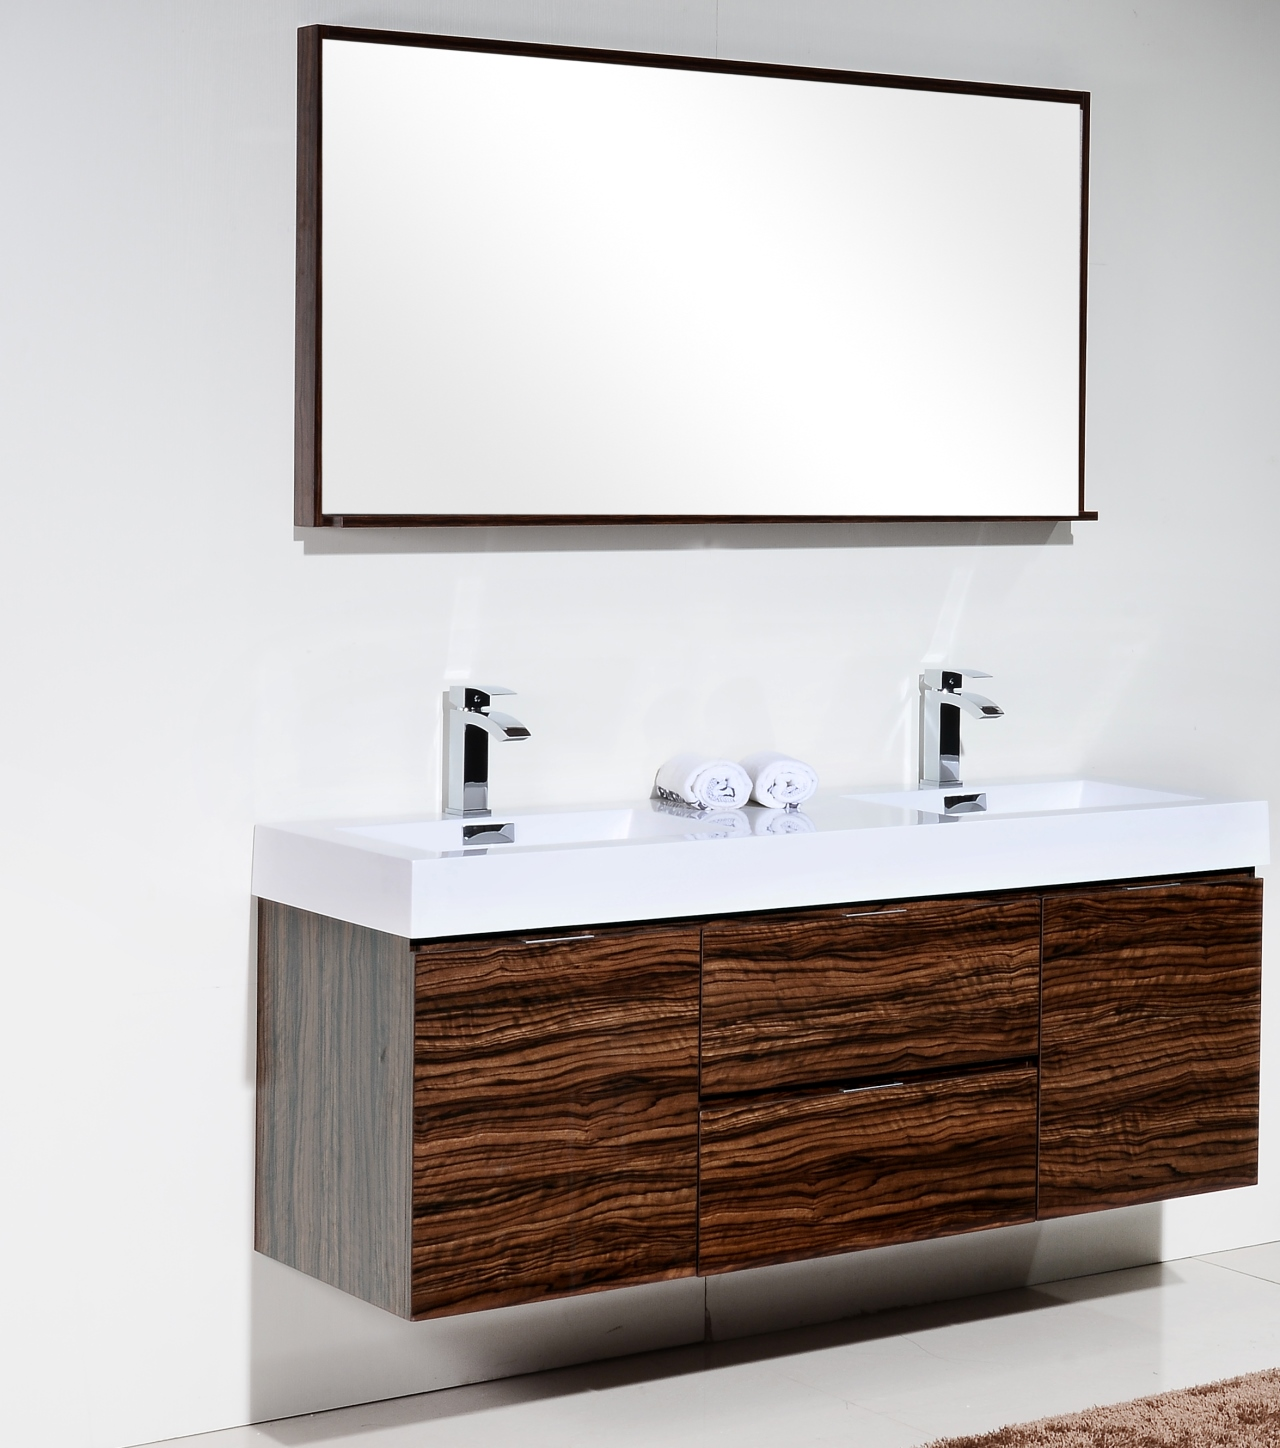 Bliss 60u2033 Walnut Wall Mount Double Sink Modern Bathroom Vanity Vanities,  Bliss, Double Sink Vanities, Wall Mount Vanities